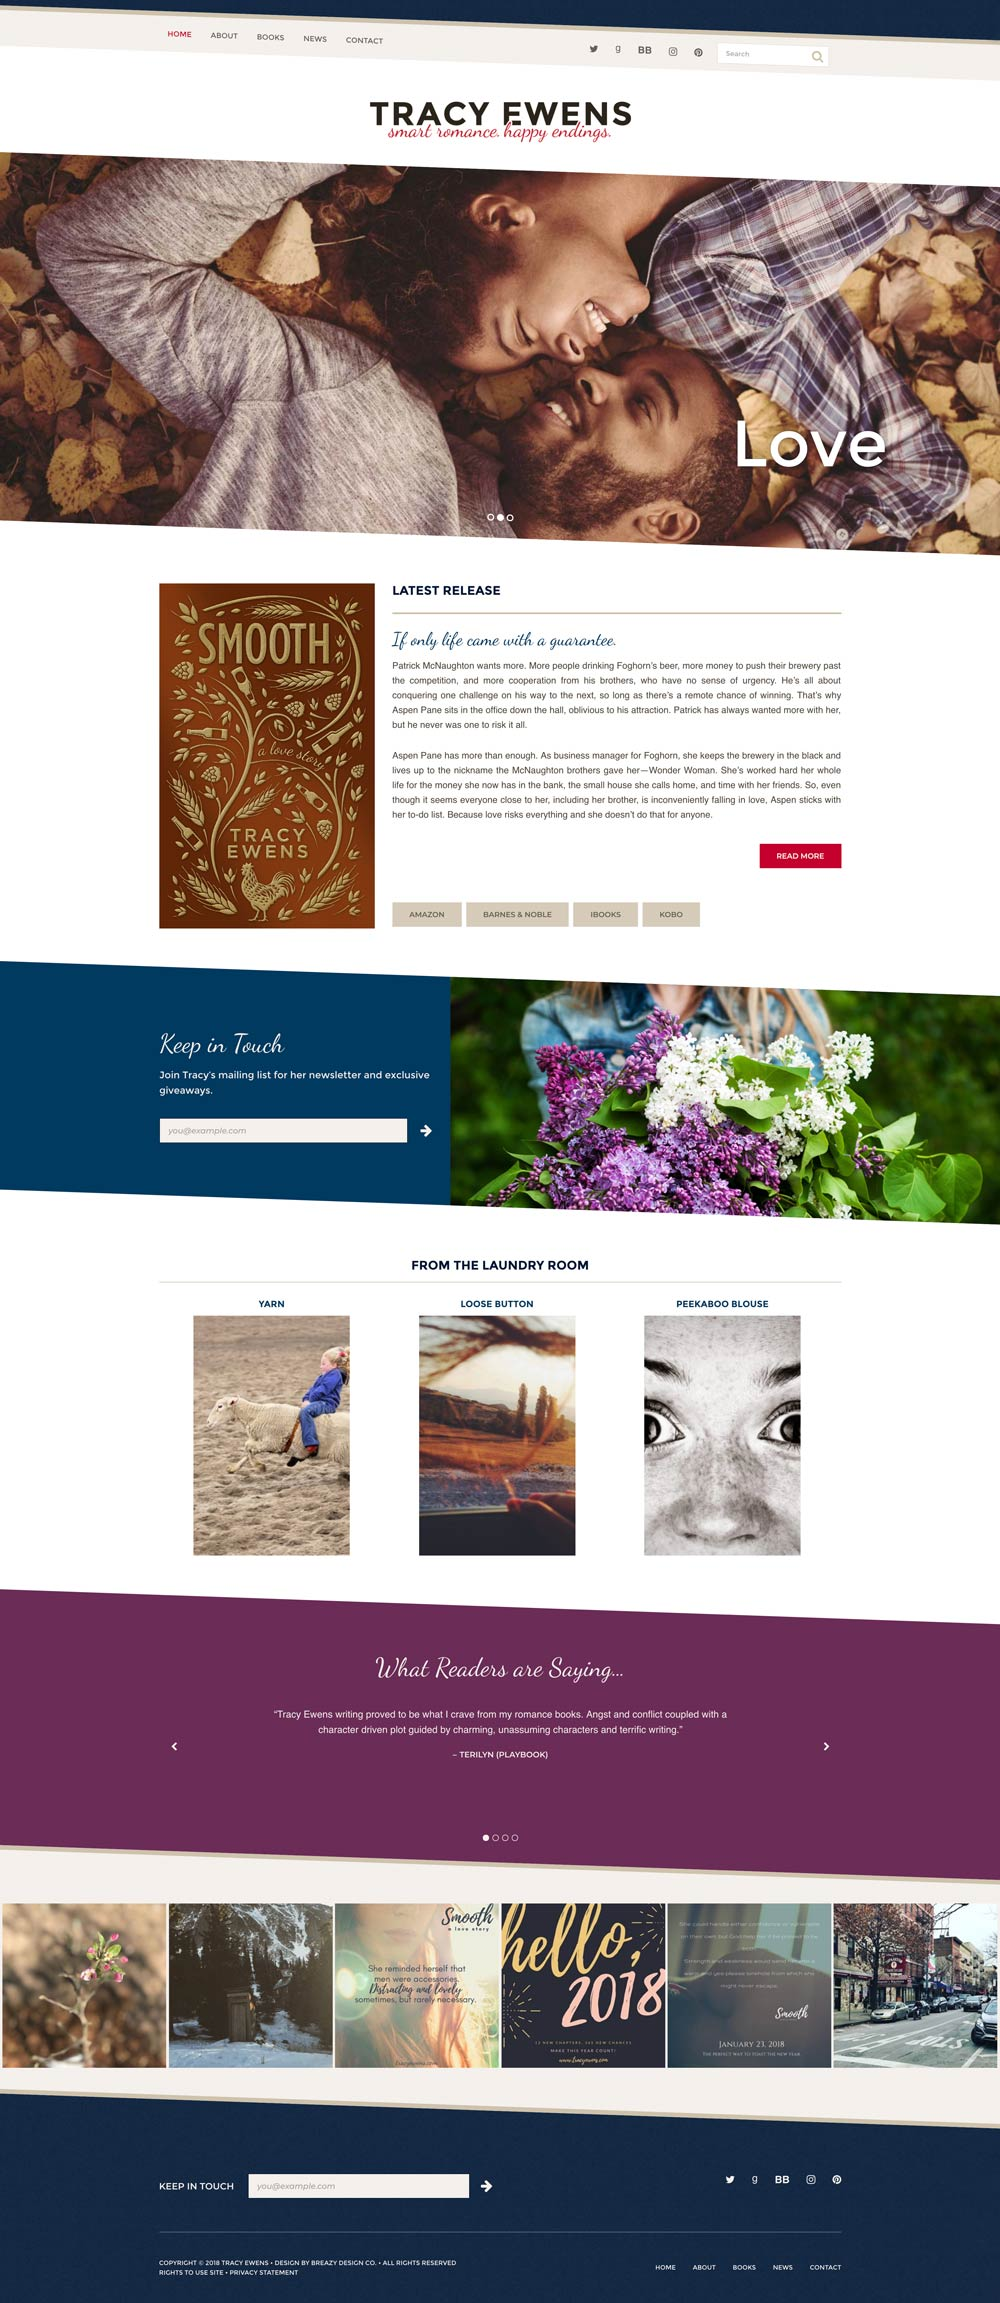 Tracy Ewens' website home page